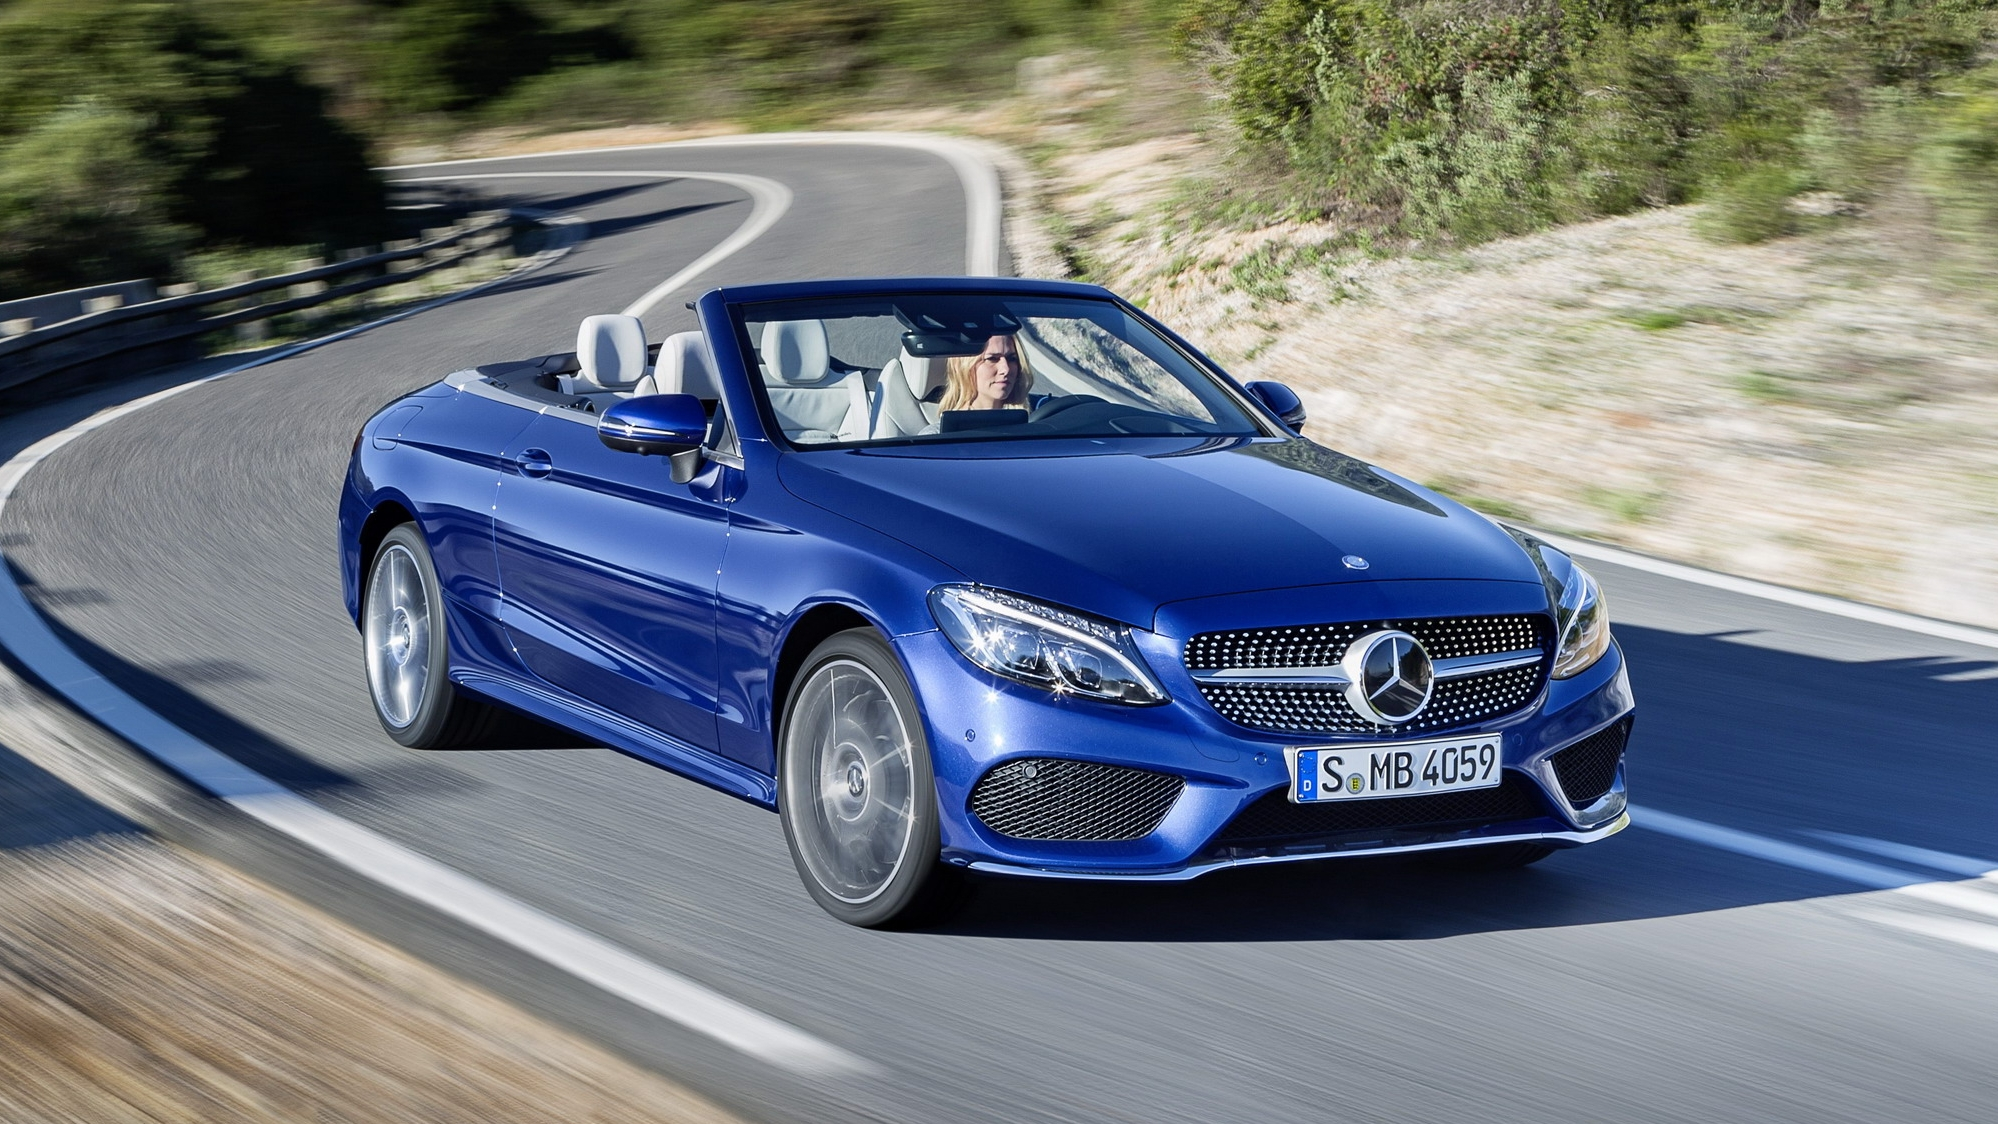 2017 mercedes benz c class cabriolet top speed. Black Bedroom Furniture Sets. Home Design Ideas